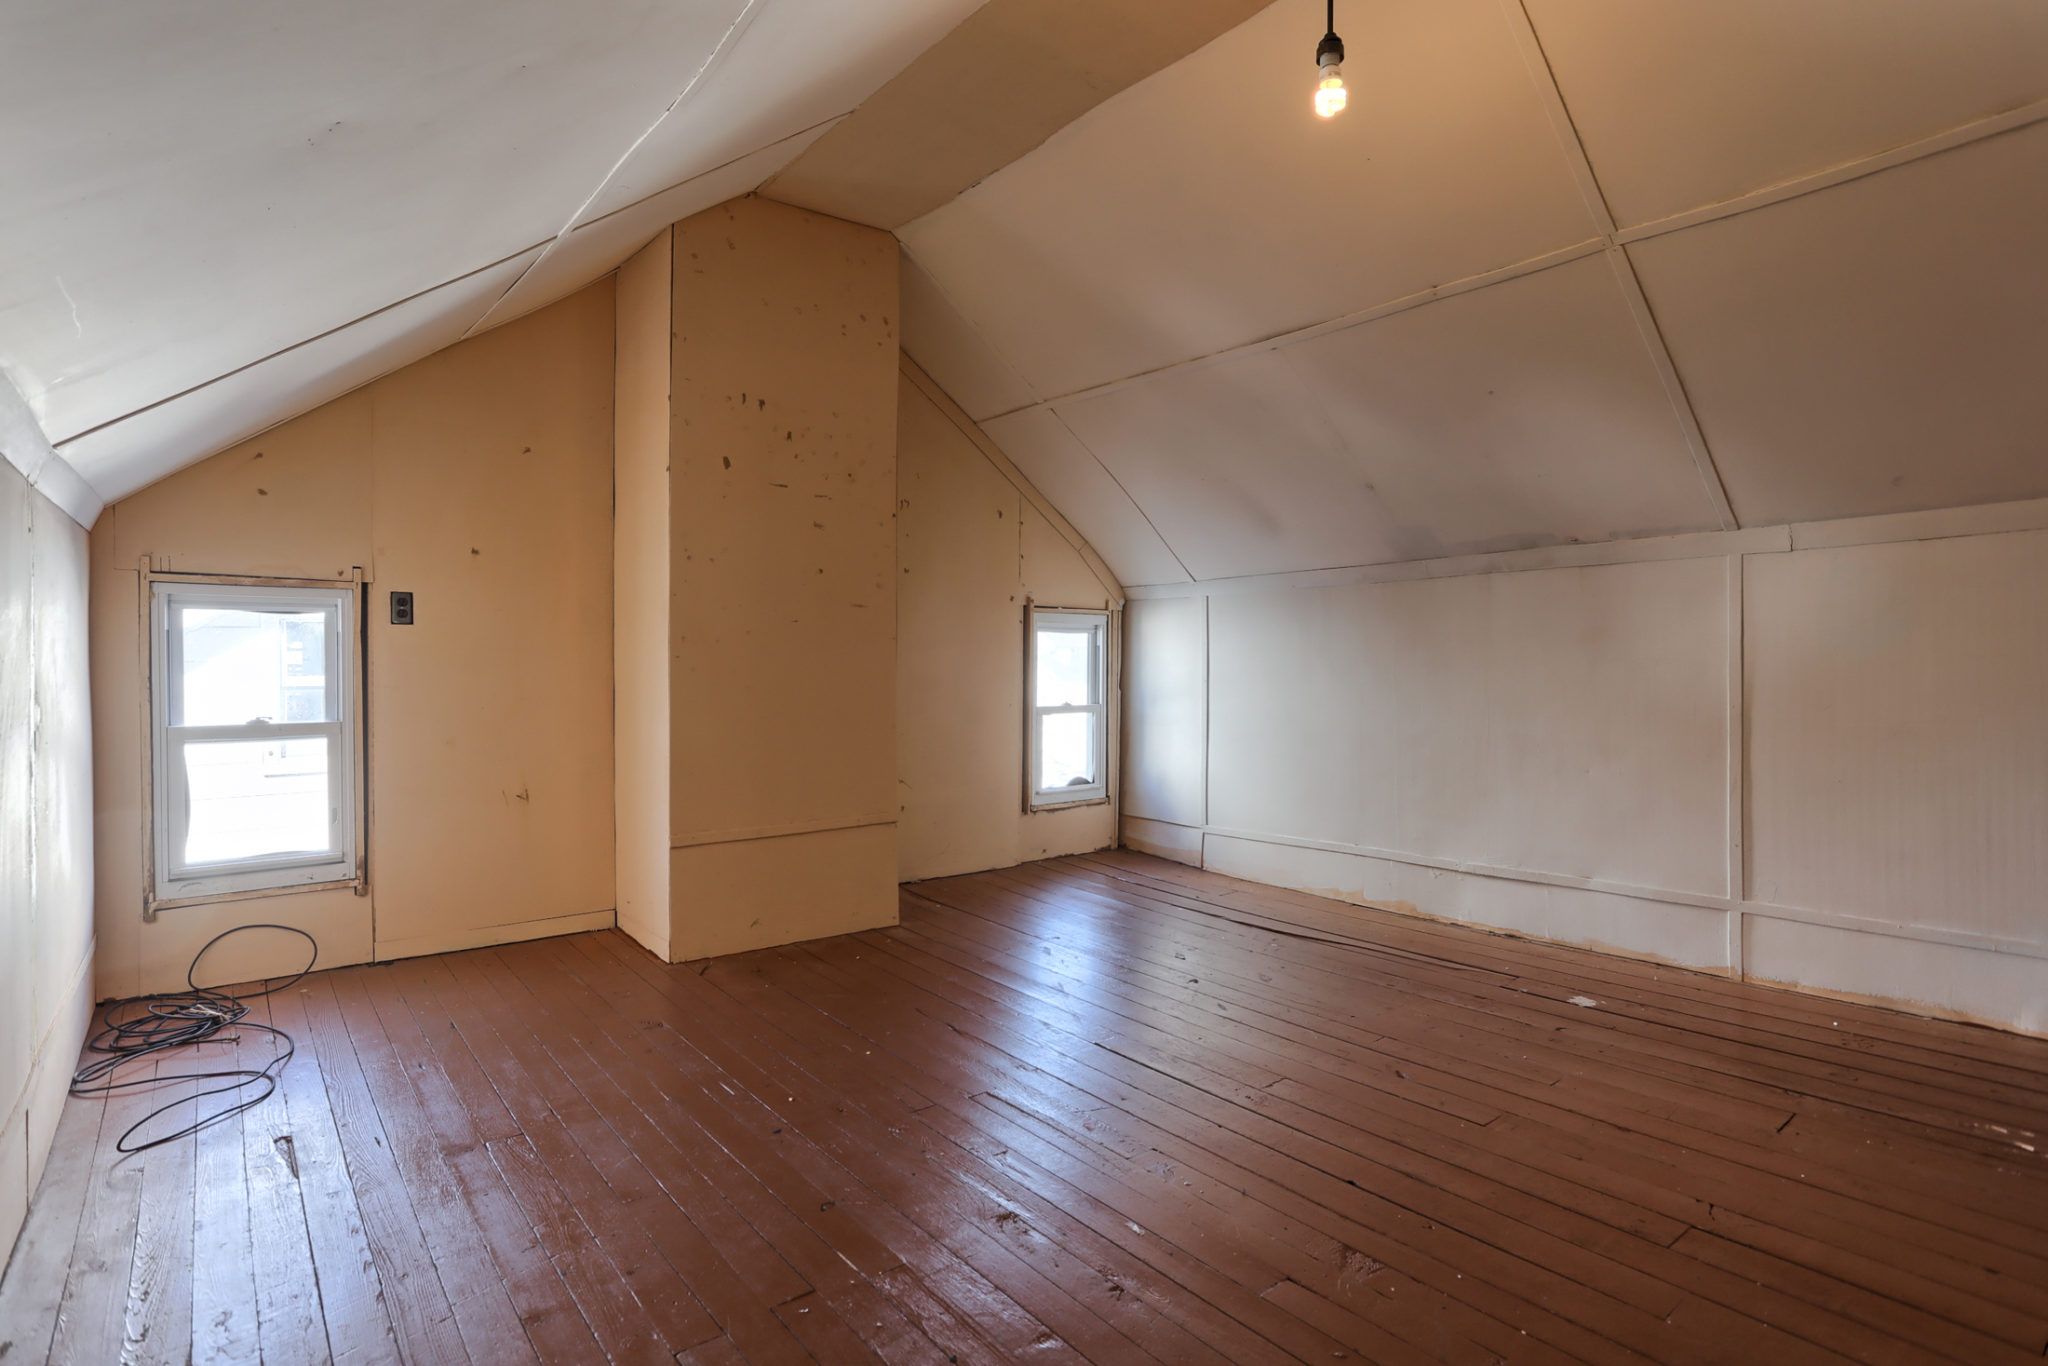 12 E. Maple Avenue - myerstown home provides additional space in Attic